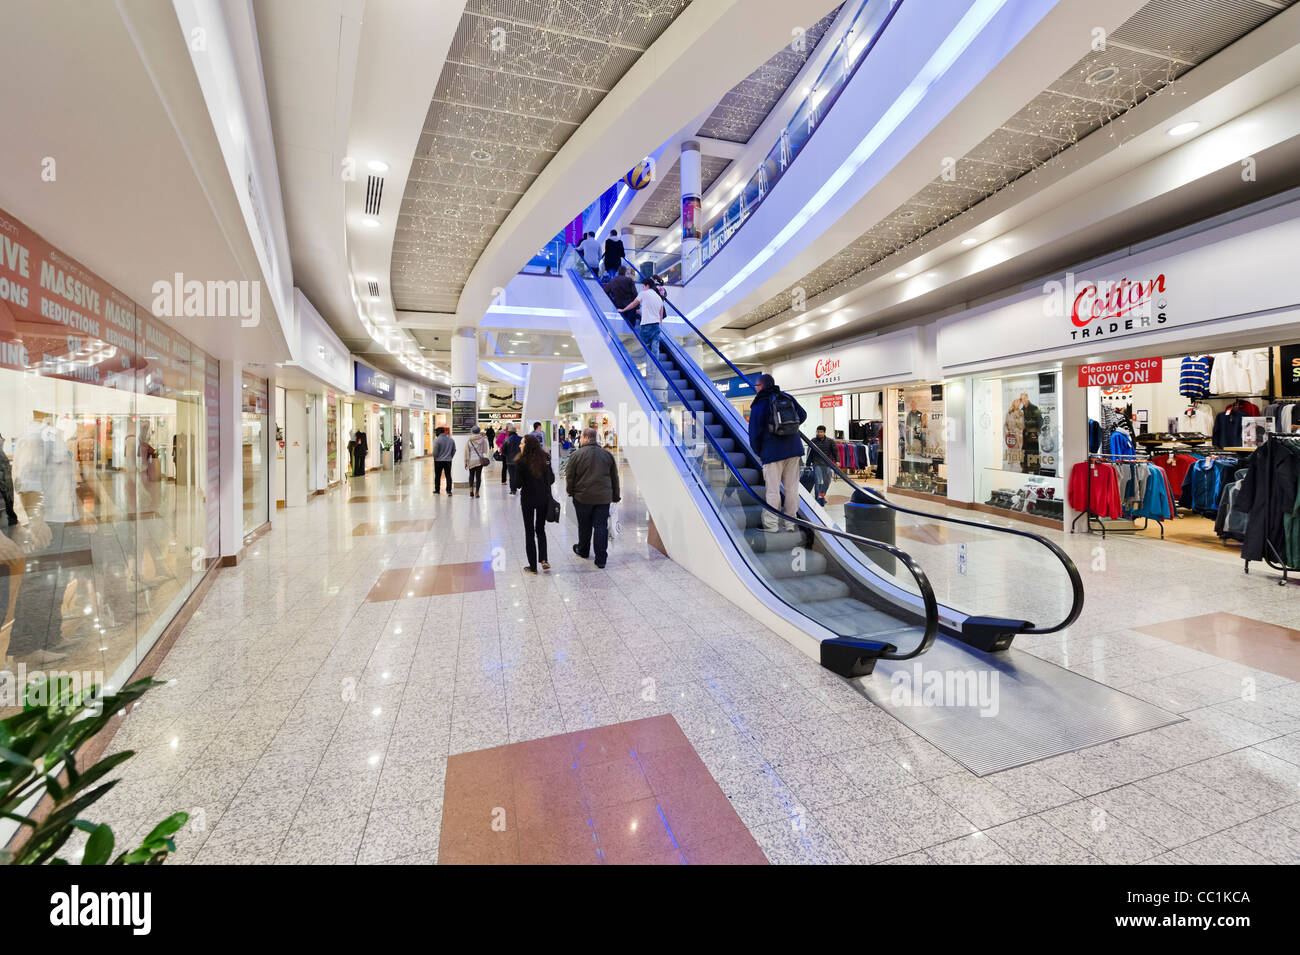 The Lowry Outlet Mall shopping centre, Salford Quays, Manchester, UK - Stock Image